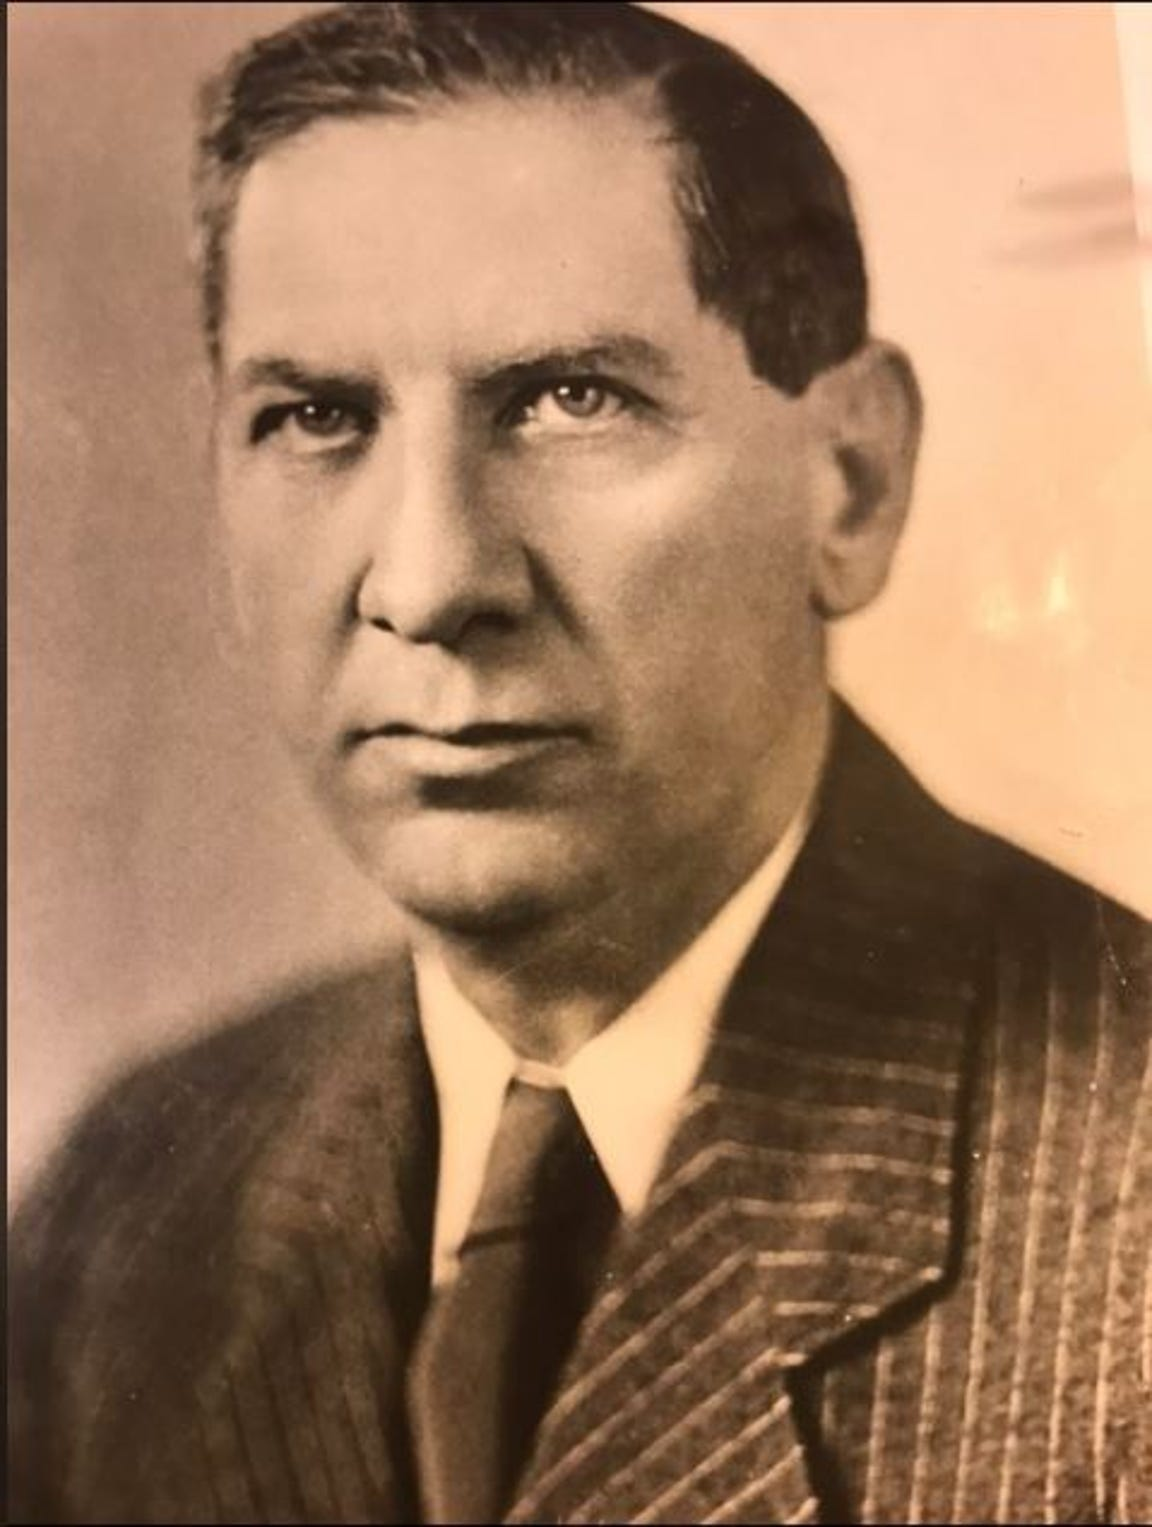 Houston Harte was born on Jan. 12, 1893, in Knob Noster, Missouri, and had owned two newspapers by the time he moved to San Angelo in 1920, to take over The Daily Standard newspaper.